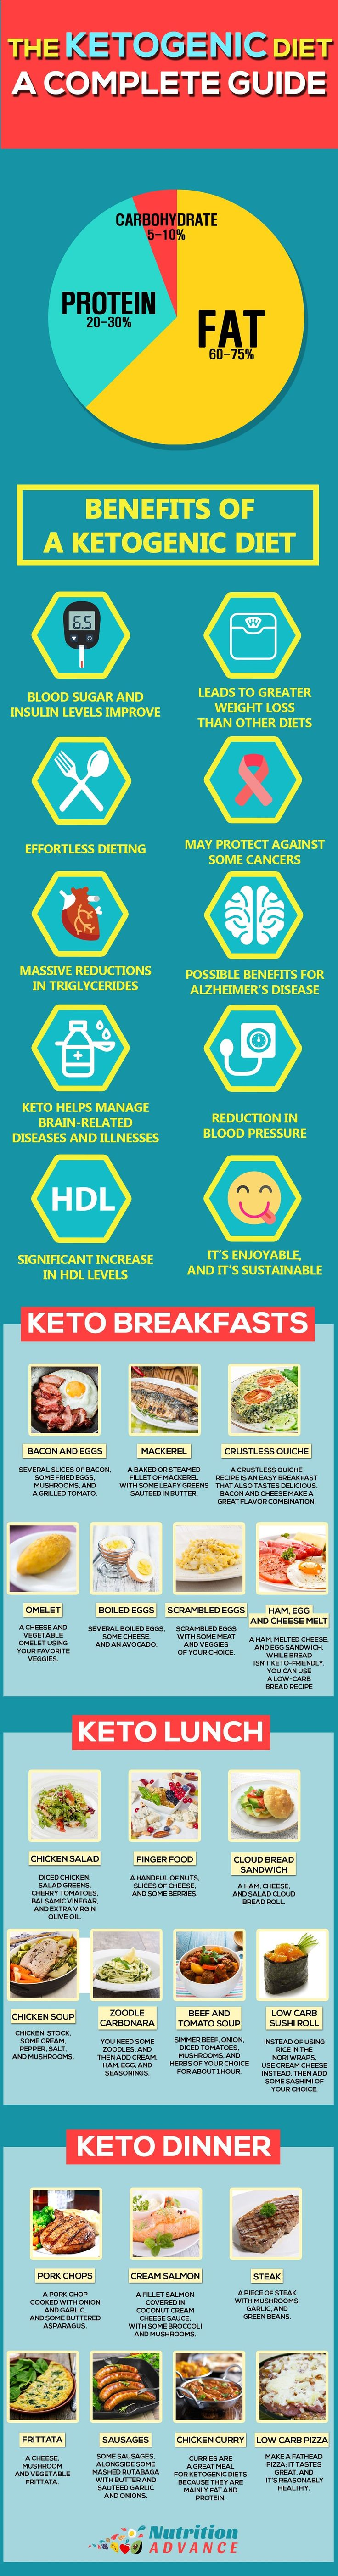 The Ketogenic Diet: An Ultimate Guide. This infographic shows some of the benefits of a Ketogenic Diet alongside a meal plan for 7 days featuring breakfasts, lunches, and dinners. You can find all of this info and a lot more on keto and low carb living in the main article at nutritionadvance....